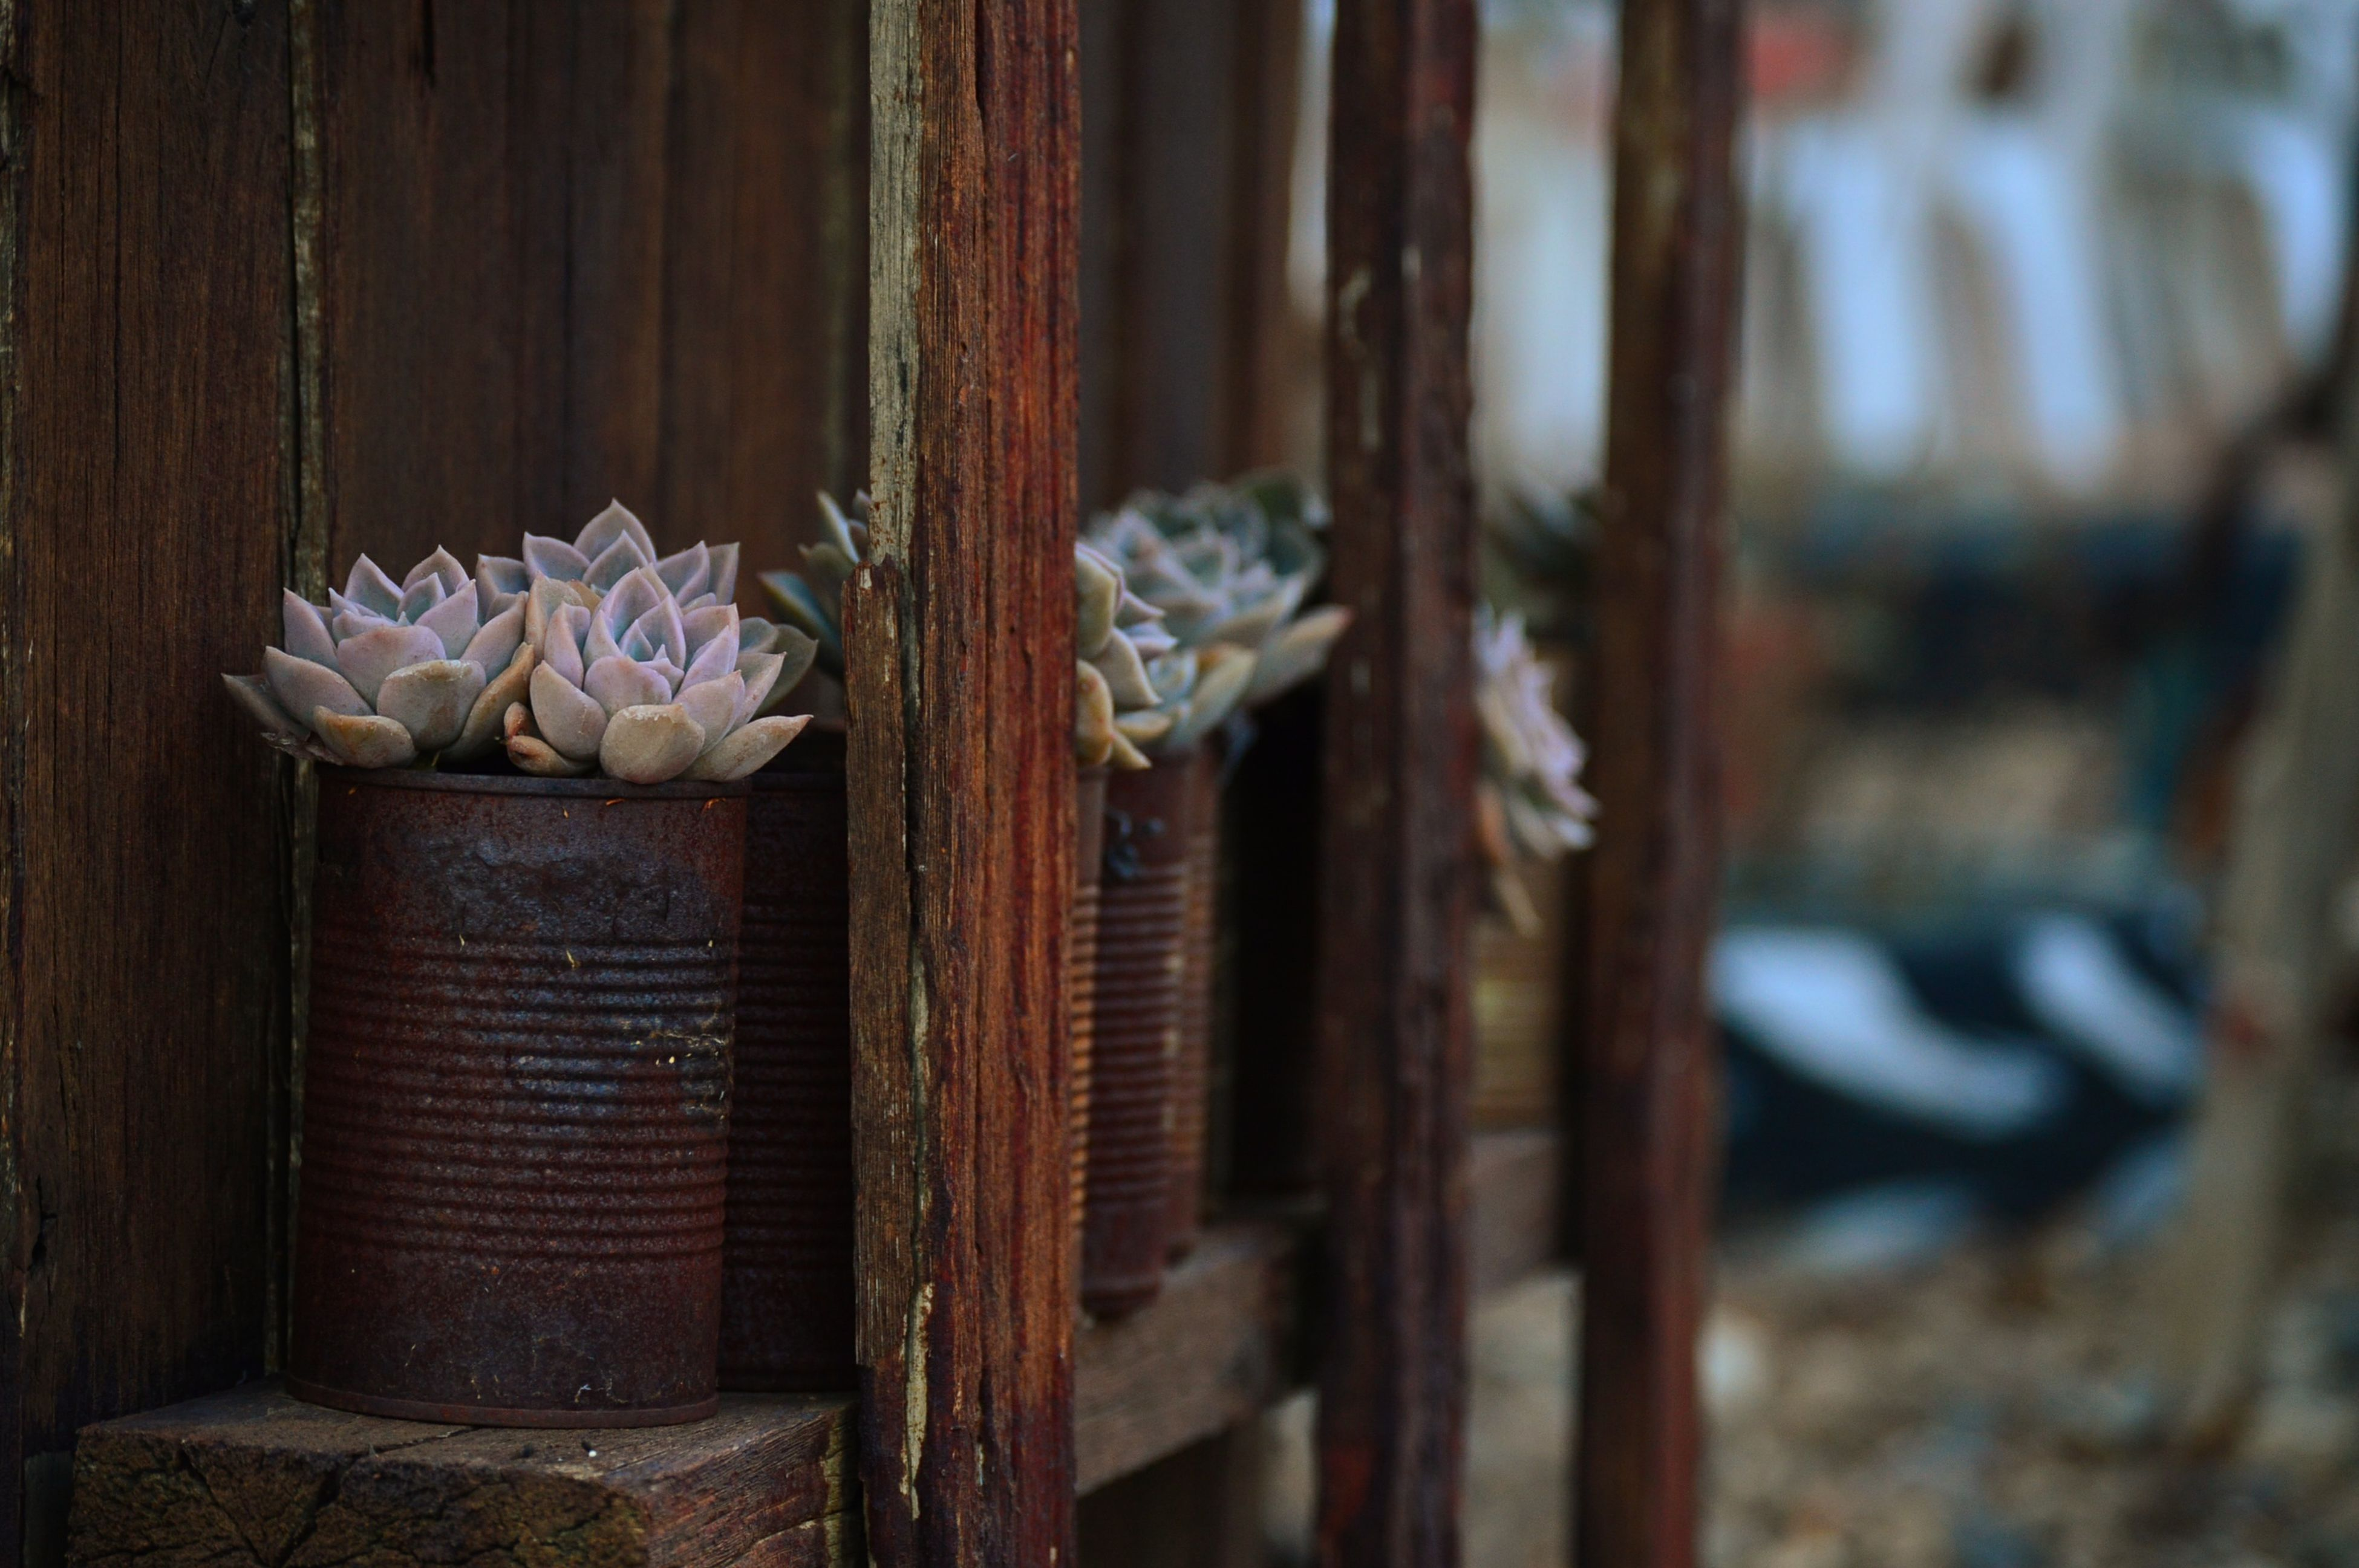 flower, wood - material, close-up, fragility, white color, wooden, focus on foreground, nature, growth, no people, day, petal, plant, wall - building feature, outdoors, stem, selective focus, fence, beauty in nature, built structure